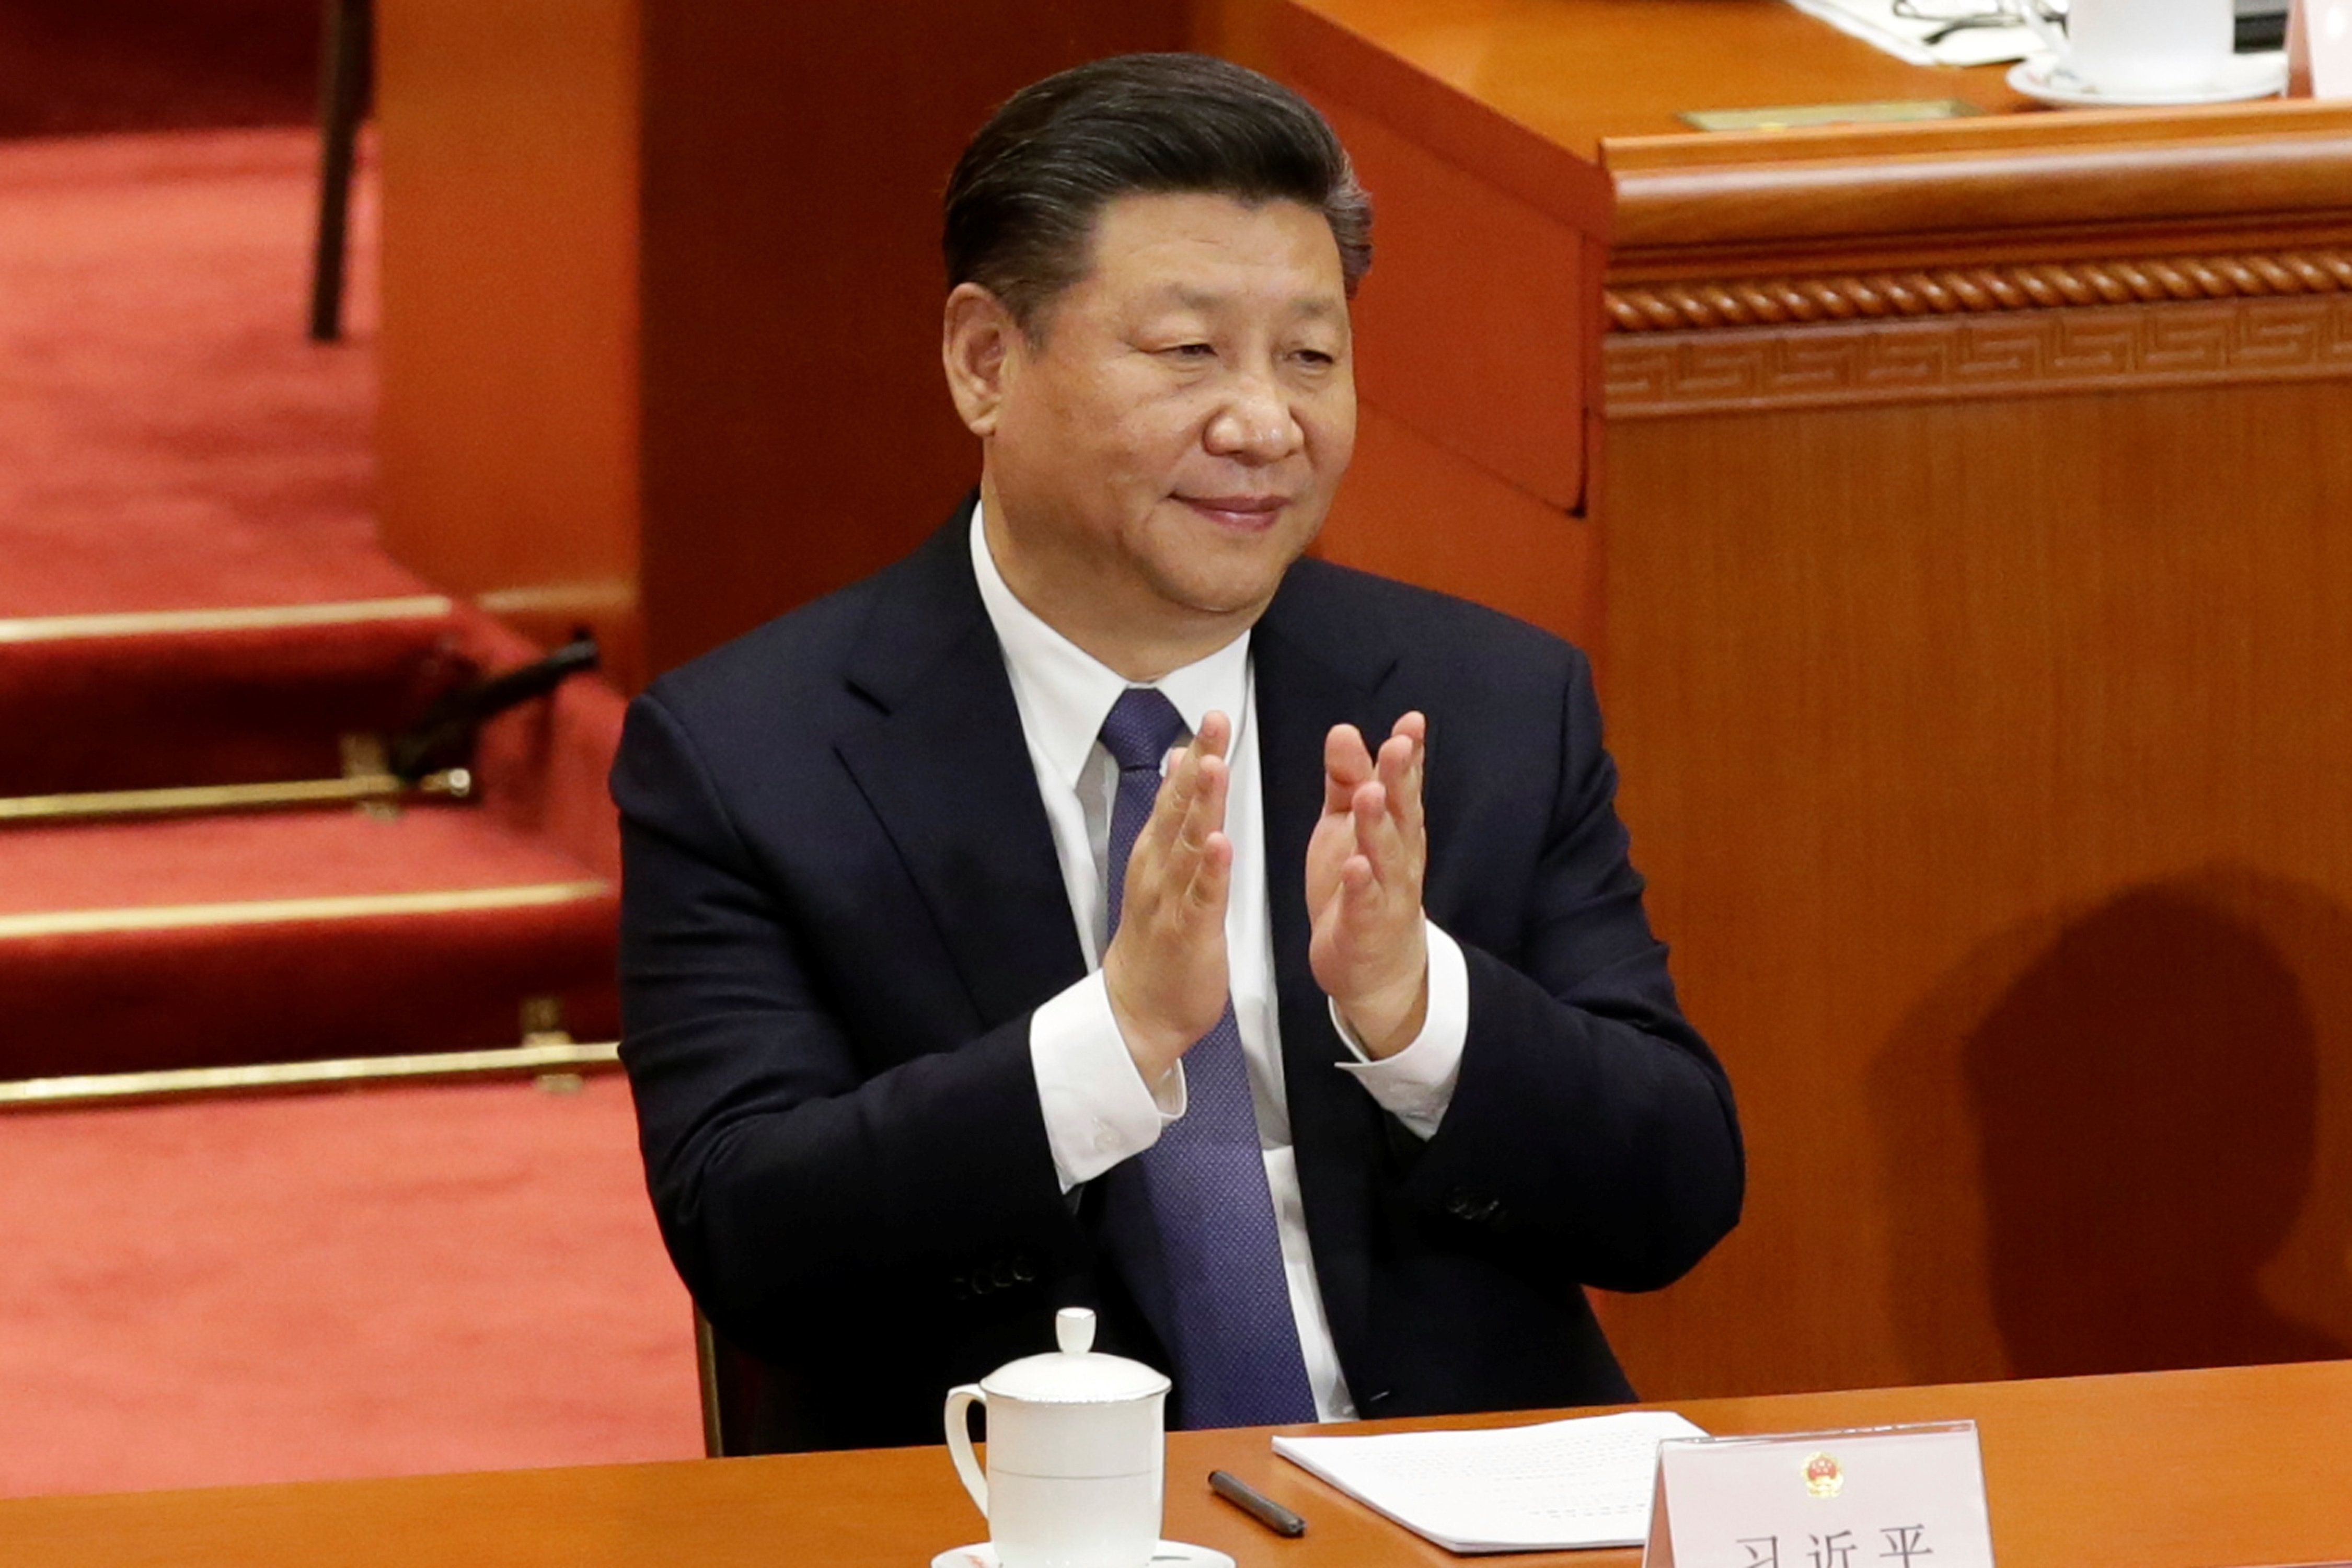 Chinese President Xi Jinping applauds after the parliament passed a constitutional amendment lifting presidential term limit, at the third plenary session of the National People's Congress (NPC) at the Great Hall of the People in Beijing, China March 11, 2018.  REUTERS/Jason Lee